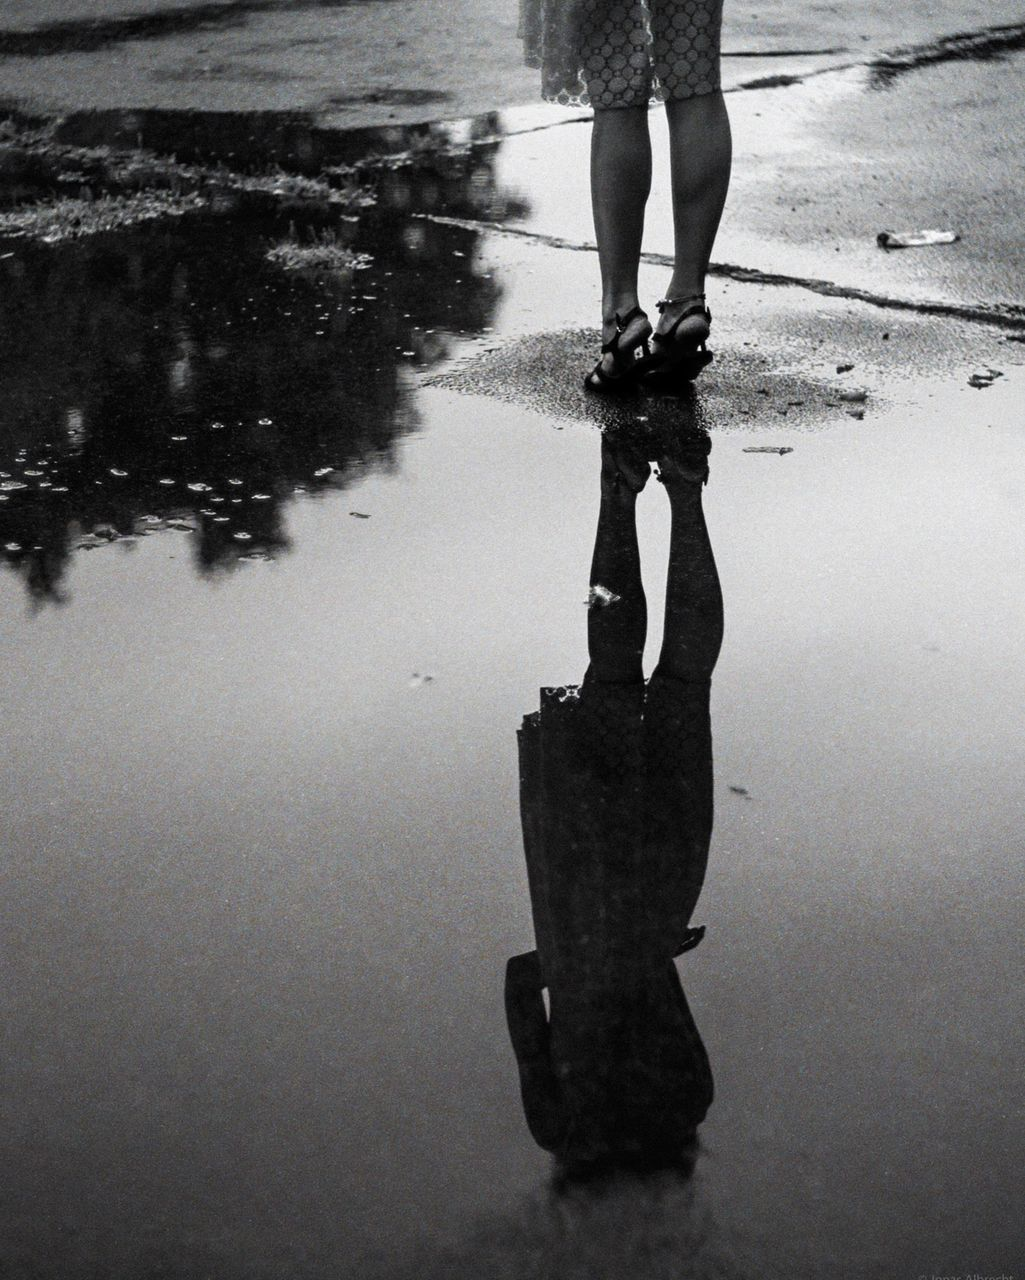 LOW SECTION VIEW OF WOMAN STANDING ON WET STREET